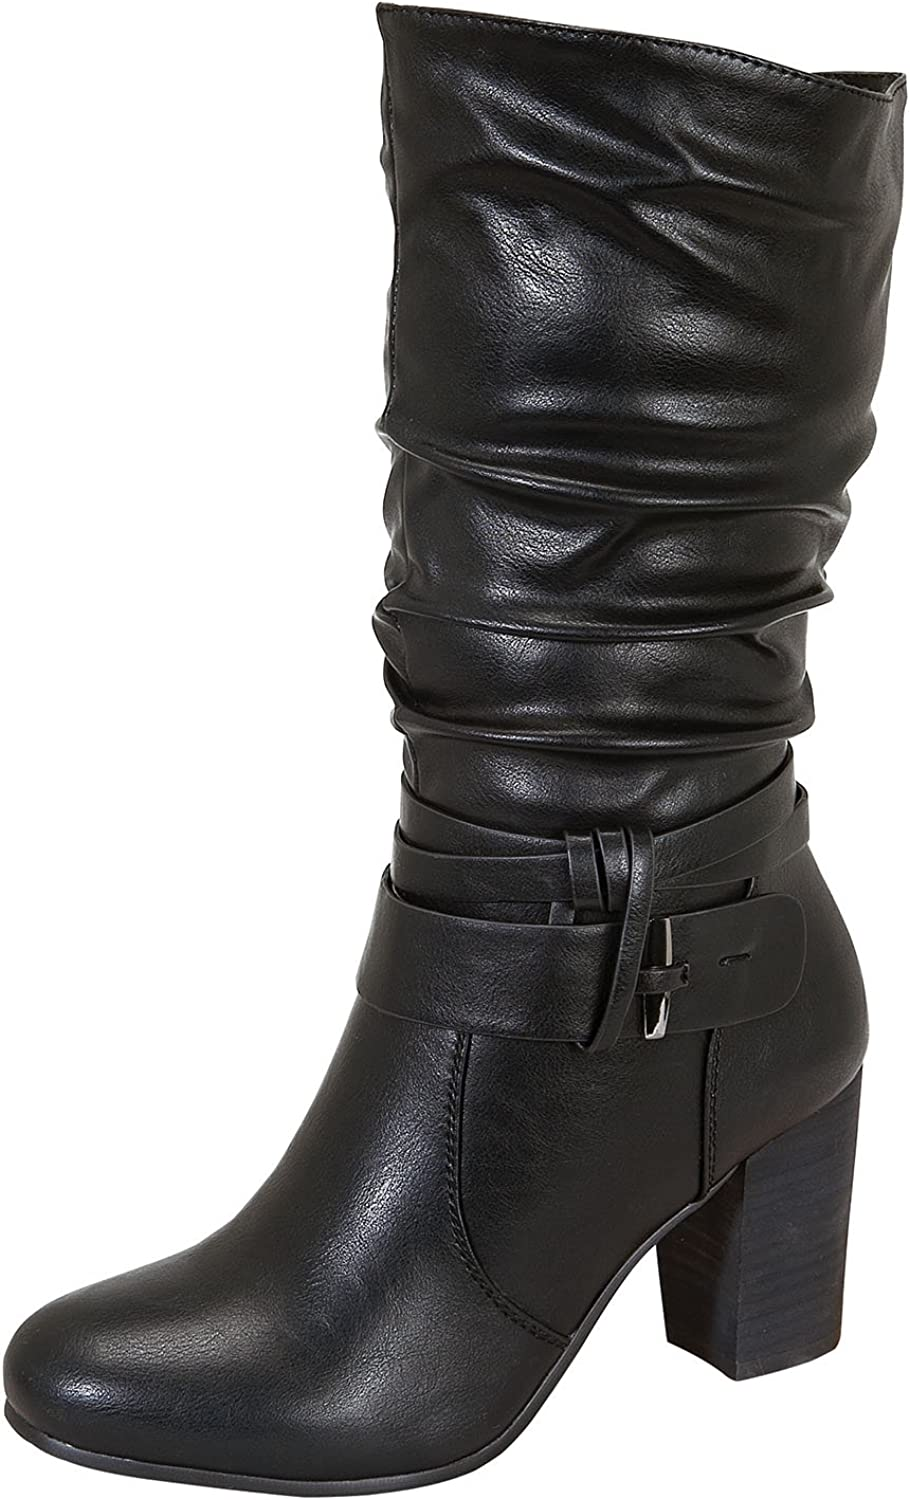 Ralph-2 Women's Middle Chunky Wooden Heel Slouchy Mid-Calf Boots Black 11